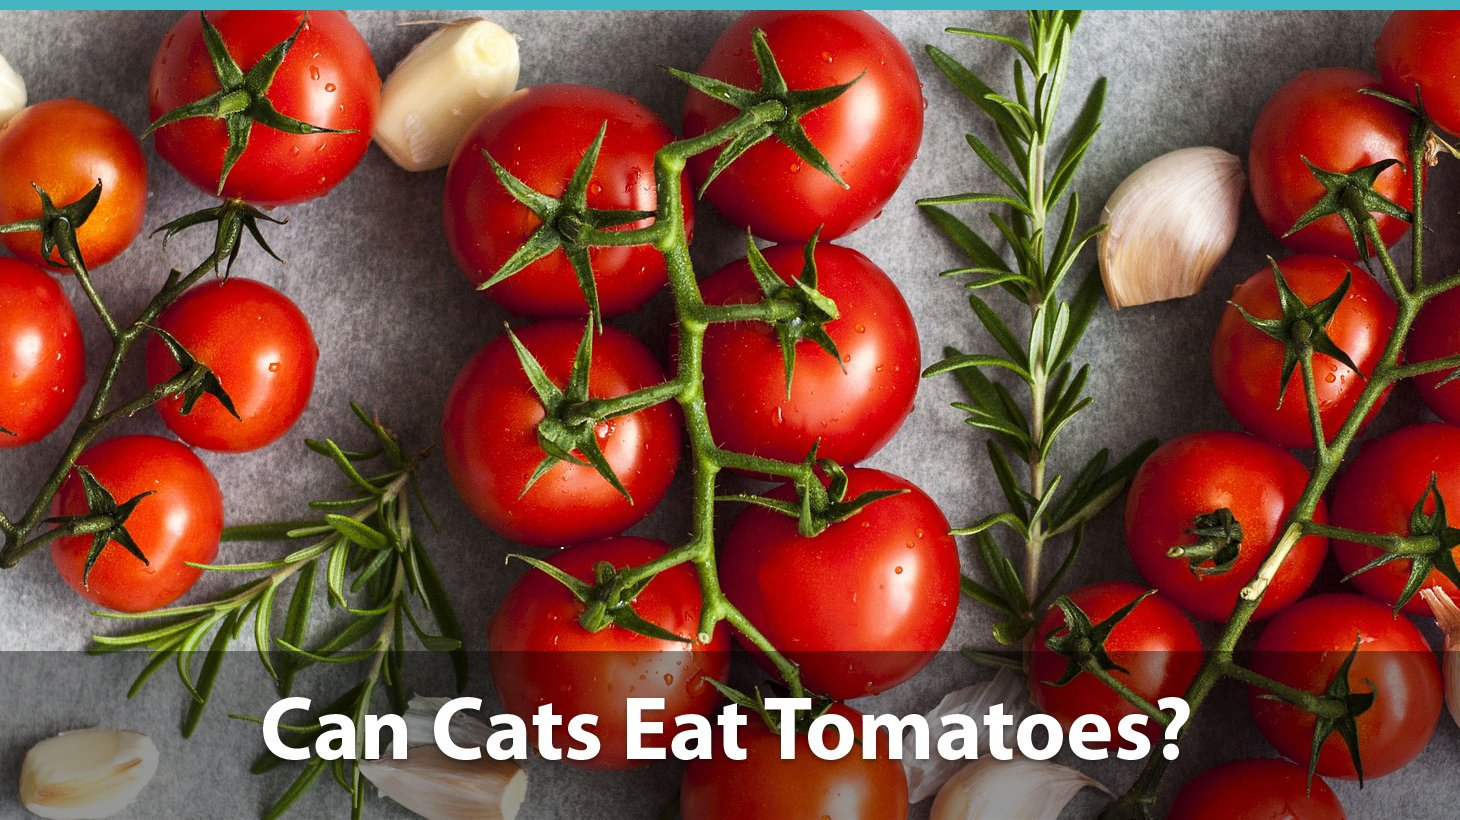 Ritzy Can Cats Eat Tomatoes Or Are Y Bad Can You Dogs Eat Tomato Sauce Does Dogs Eat Tomato Sauce houzz 01 Can Dogs Eat Tomato Sauce